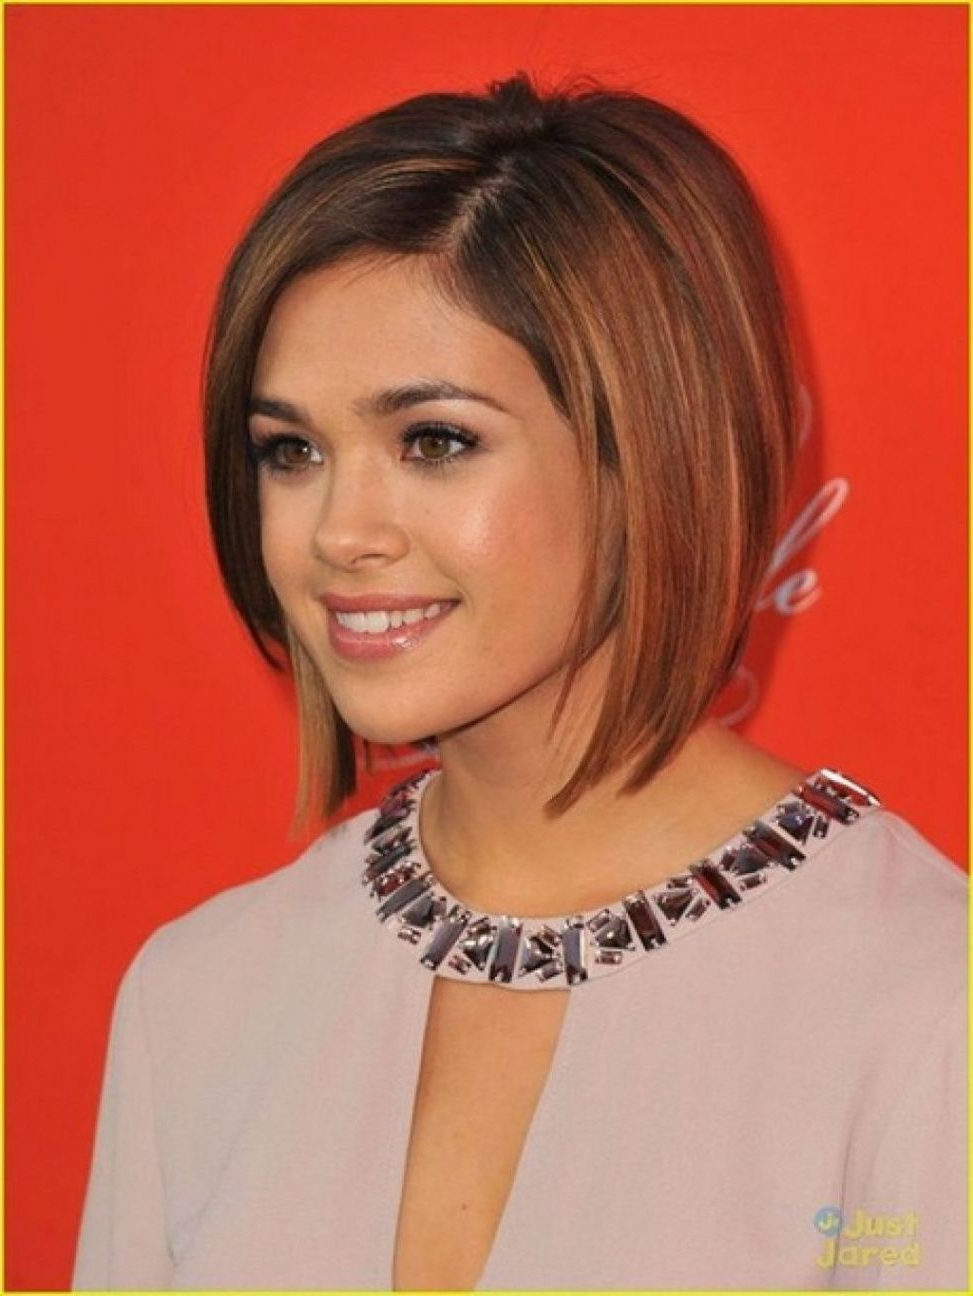 Teenage Girl With Short Hair Curly Guys    Bobs   Pinterest Pertaining To Teenage Girl Short Haircuts (View 3 of 25)